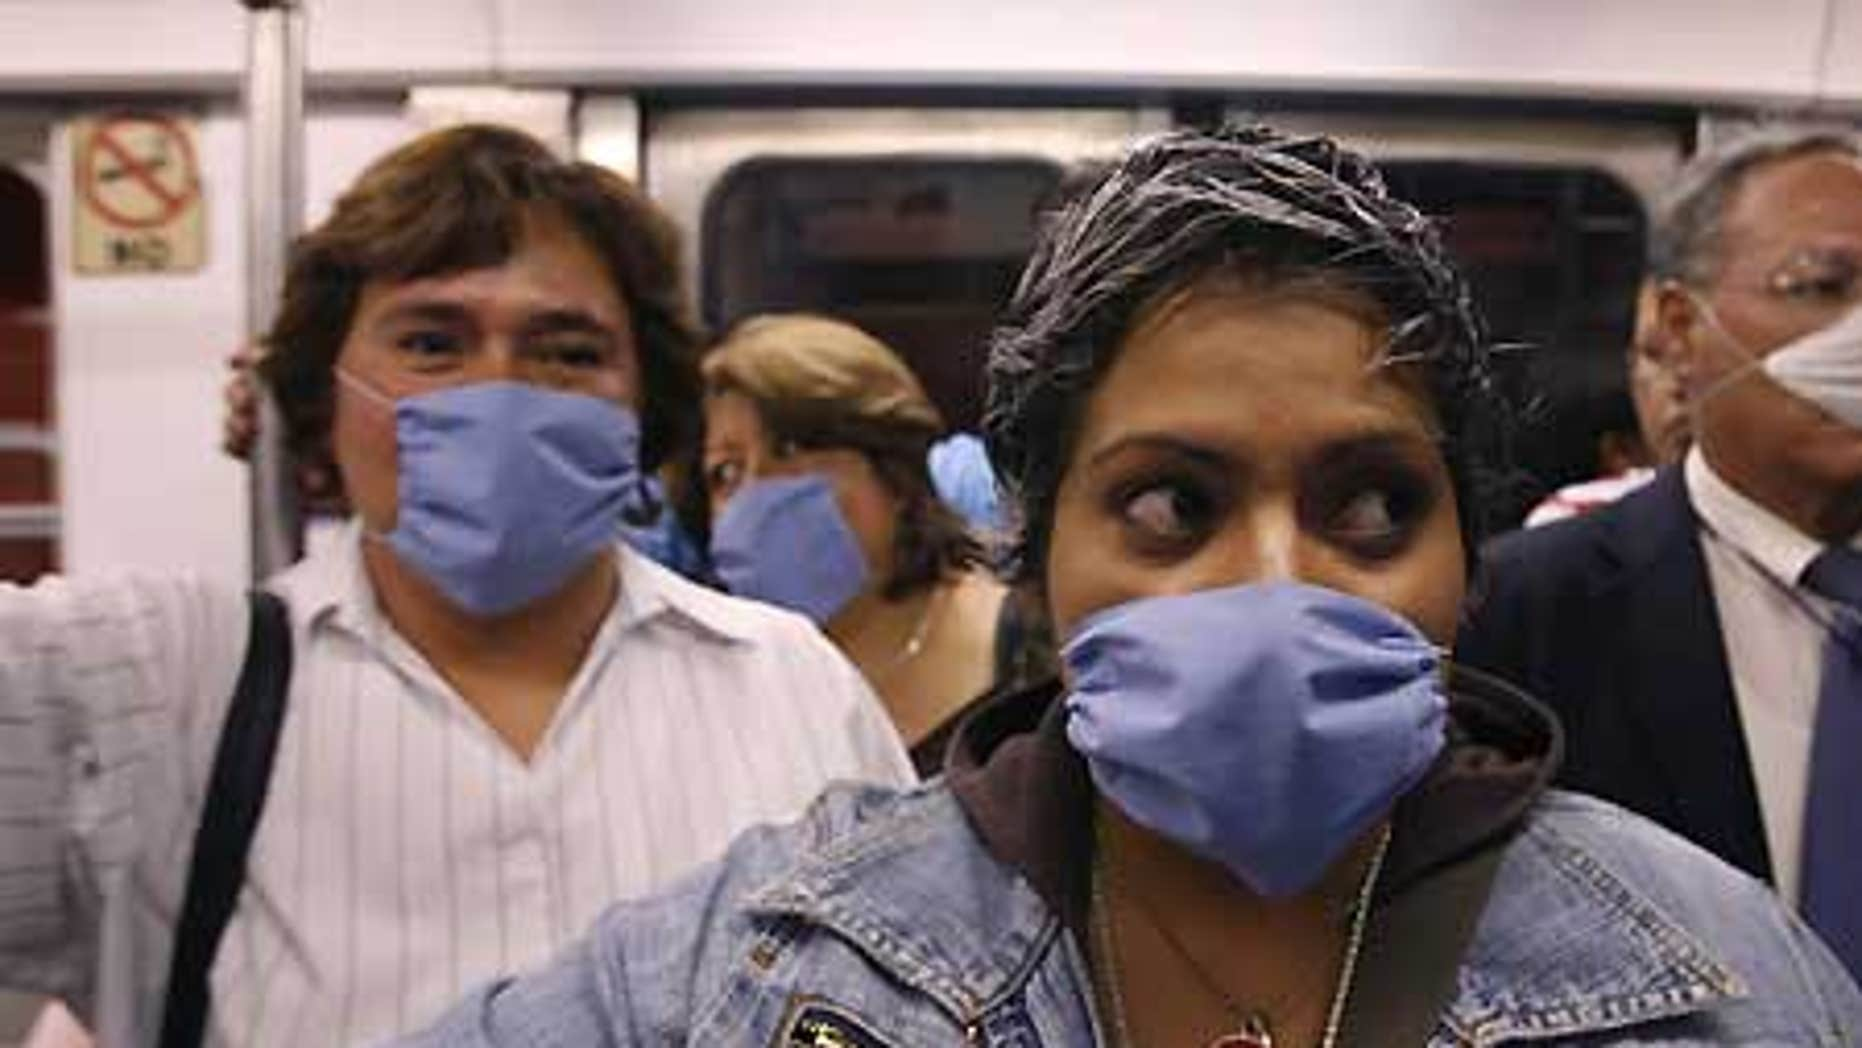 April 24: People wear surgical masks as a precaution against infection inside a subway in Mexico City.